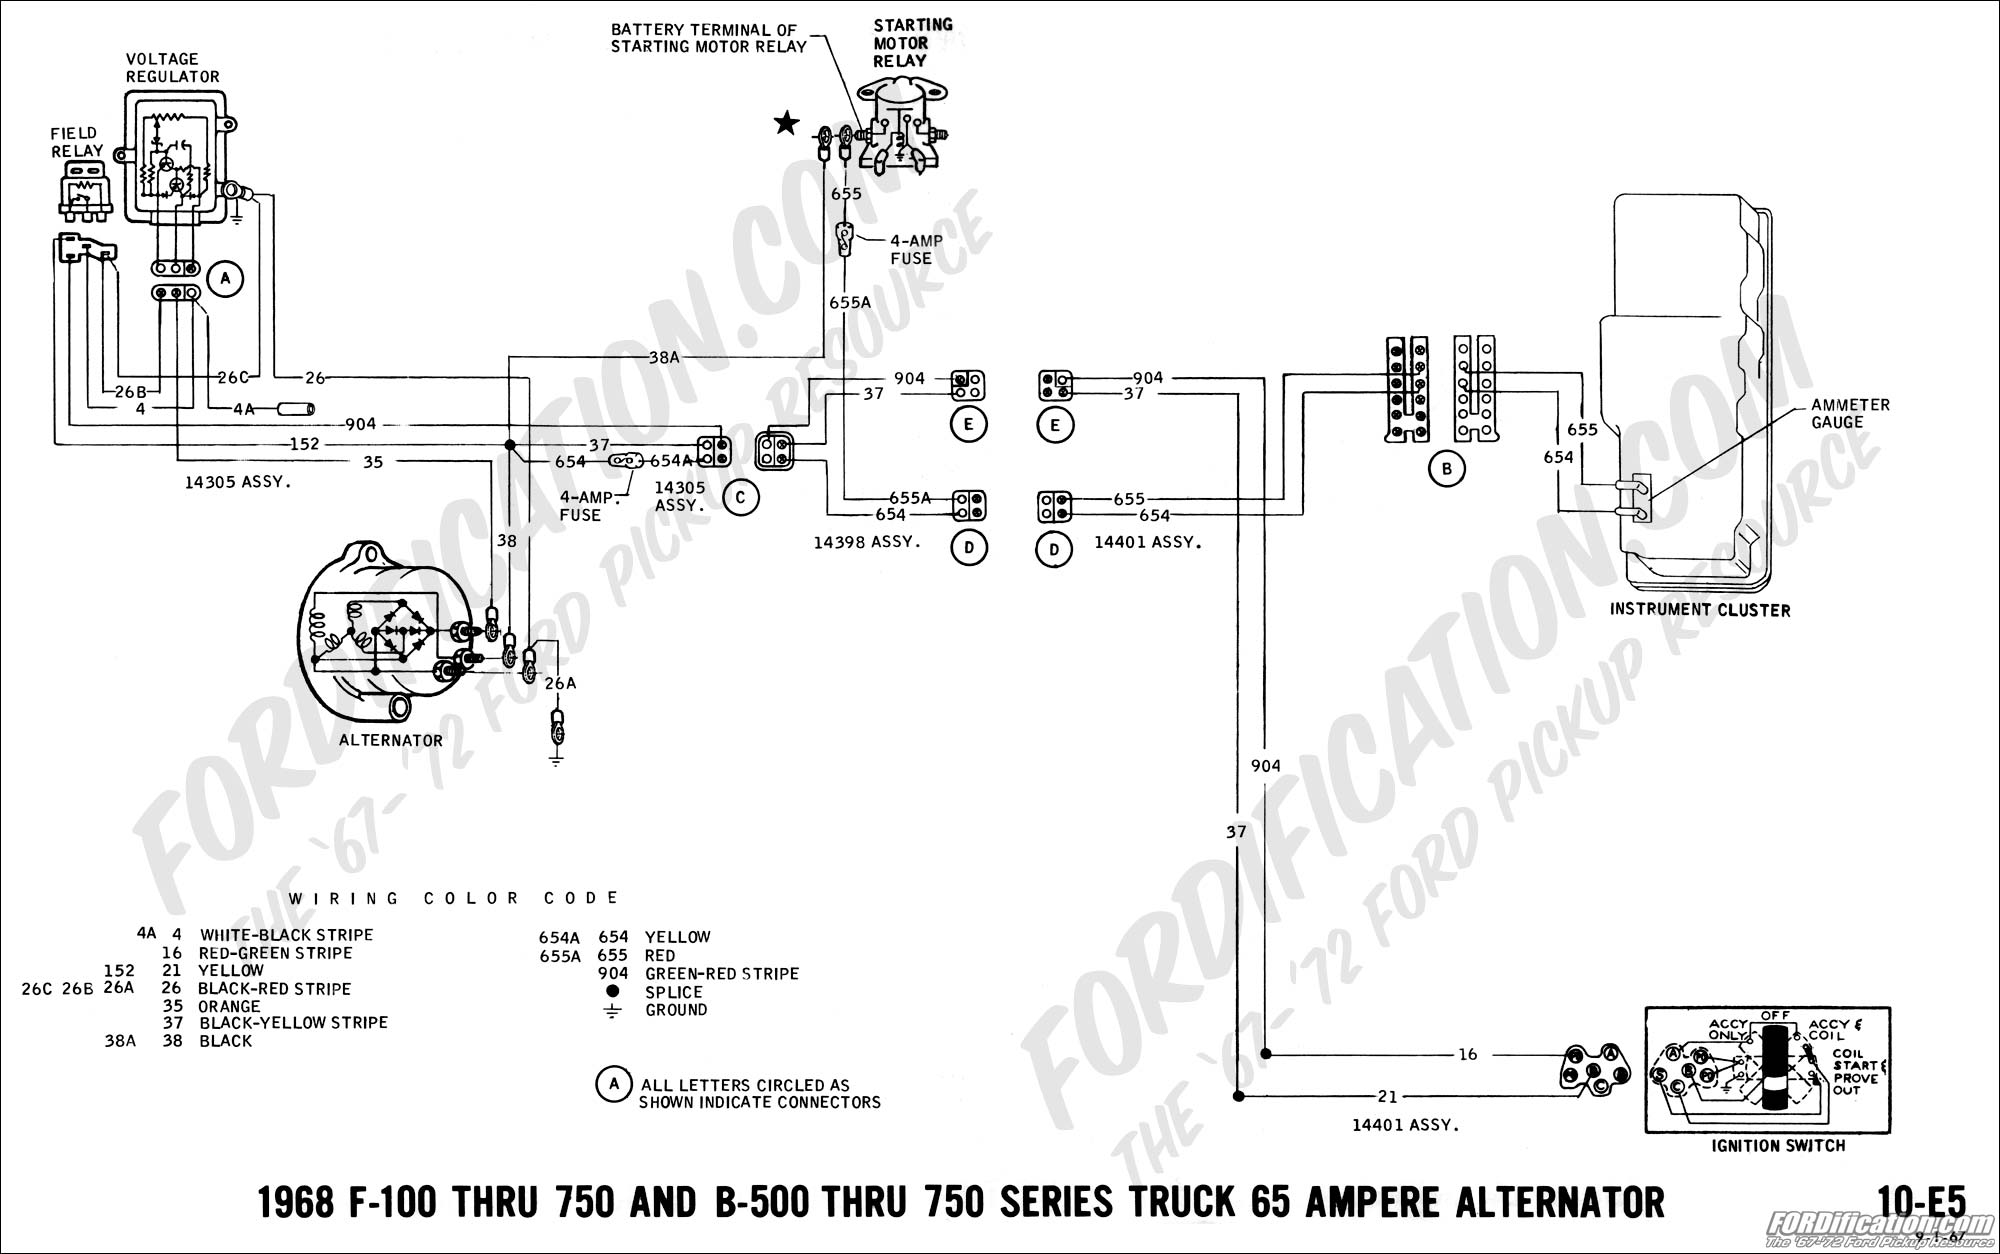 68 07 ford truck technical drawings and schematics section h wiring ford alternator wiring diagram at gsmportal.co